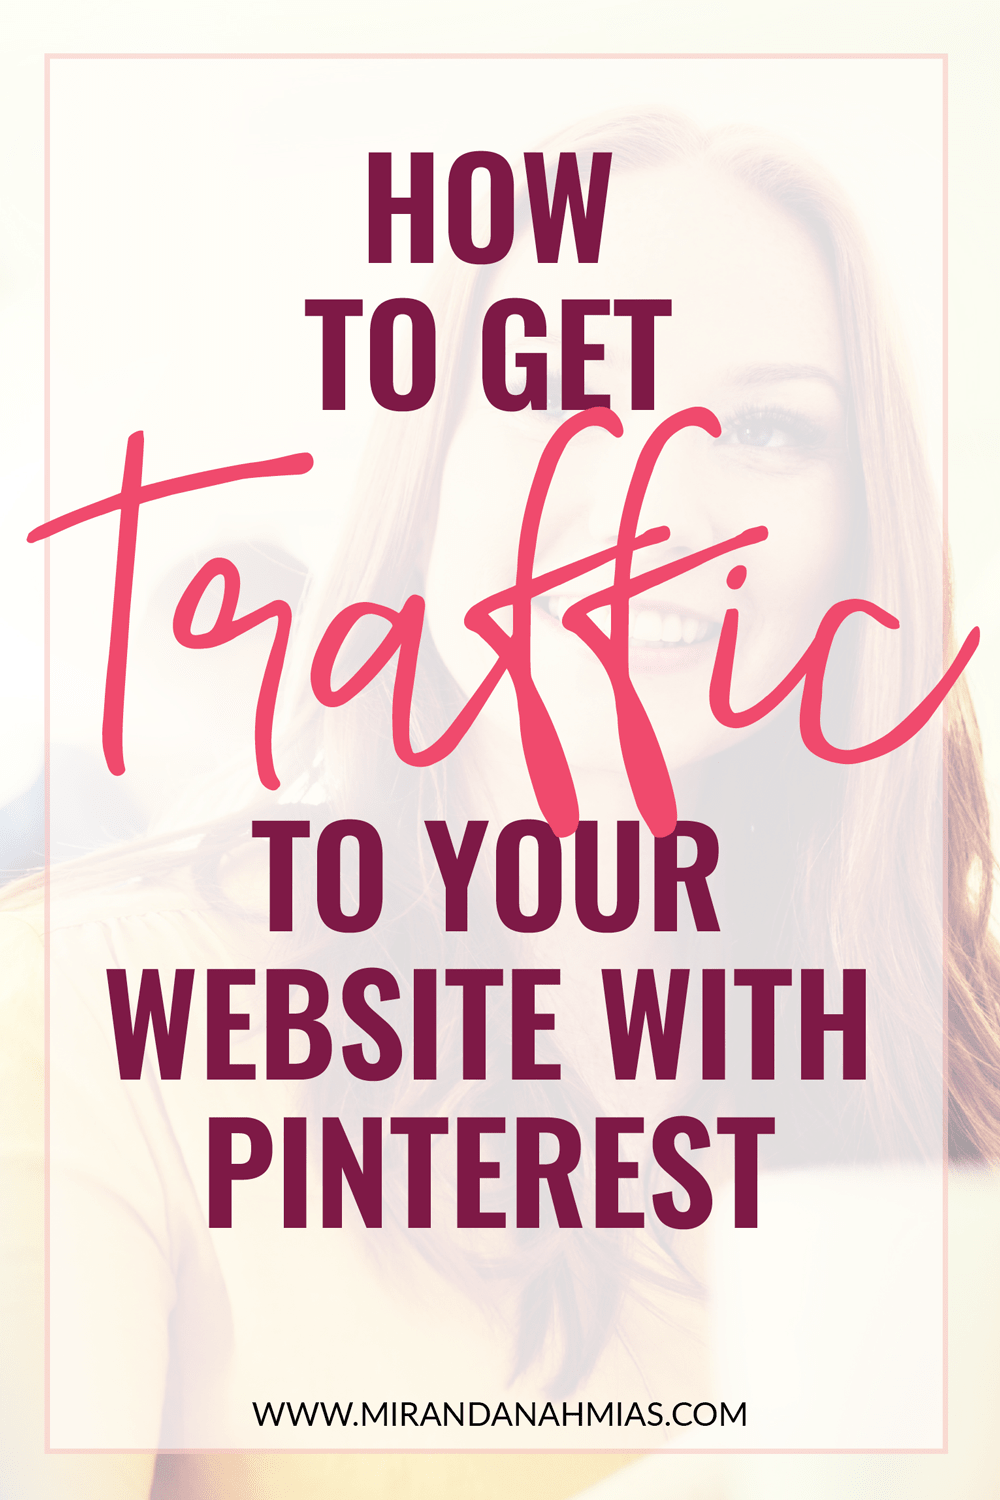 How to Get Traffic to Your Website with Pinterest | Miranda Nahmias & Co. — Systematic Marketing for Female Service Providers